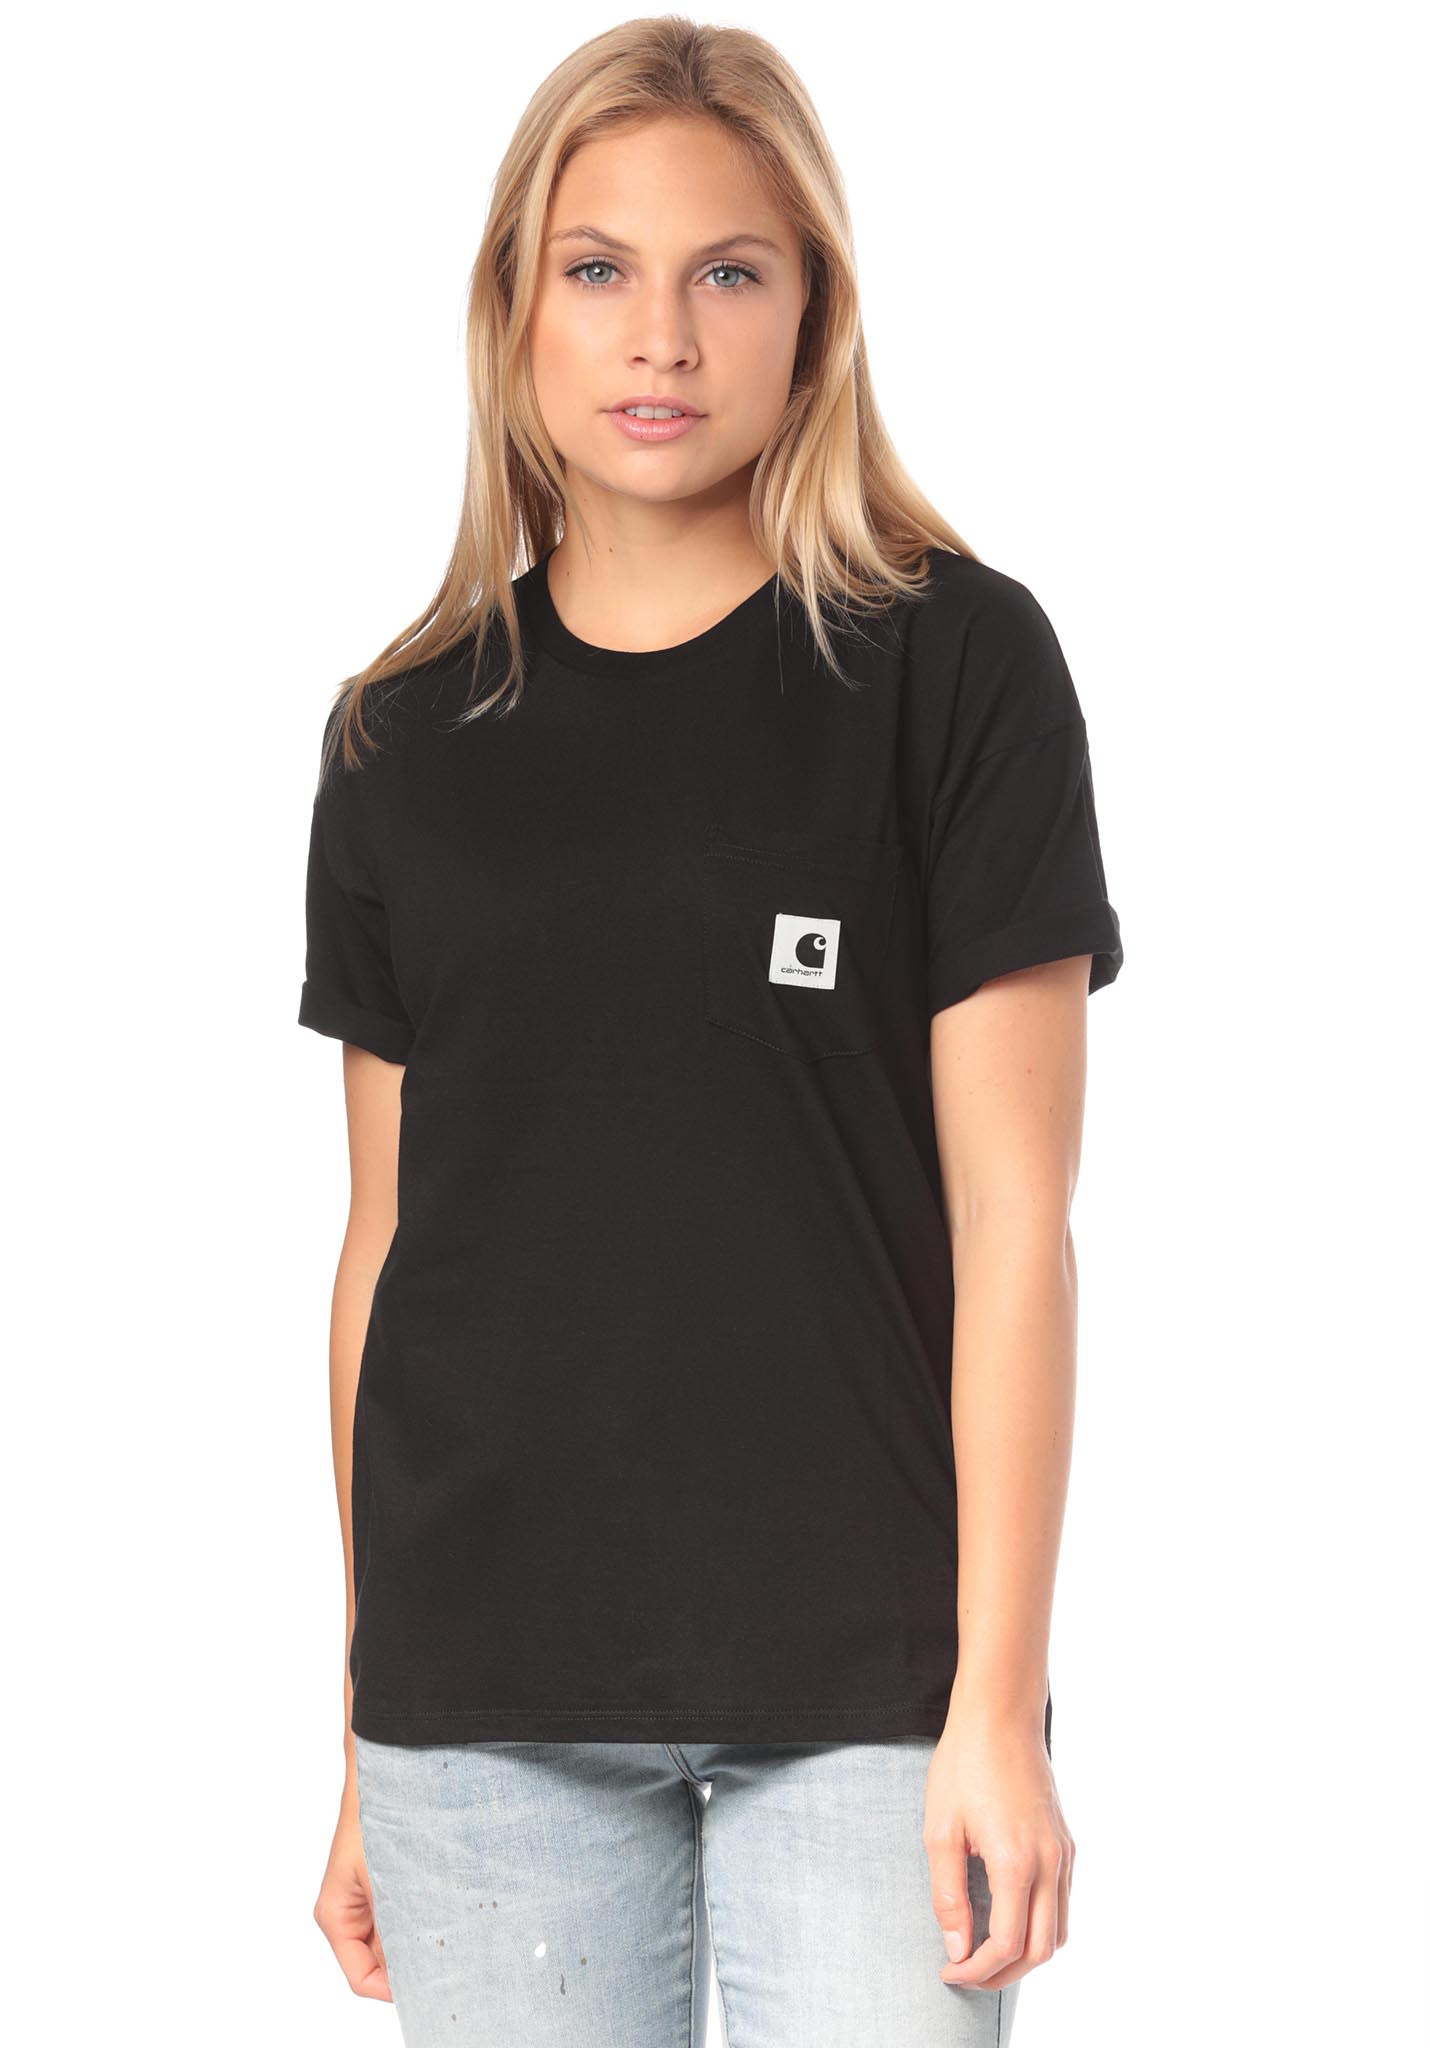 carhartt WIP Carrie Pocket - T-Shirt for Women - Black - Planet Sports a916446028